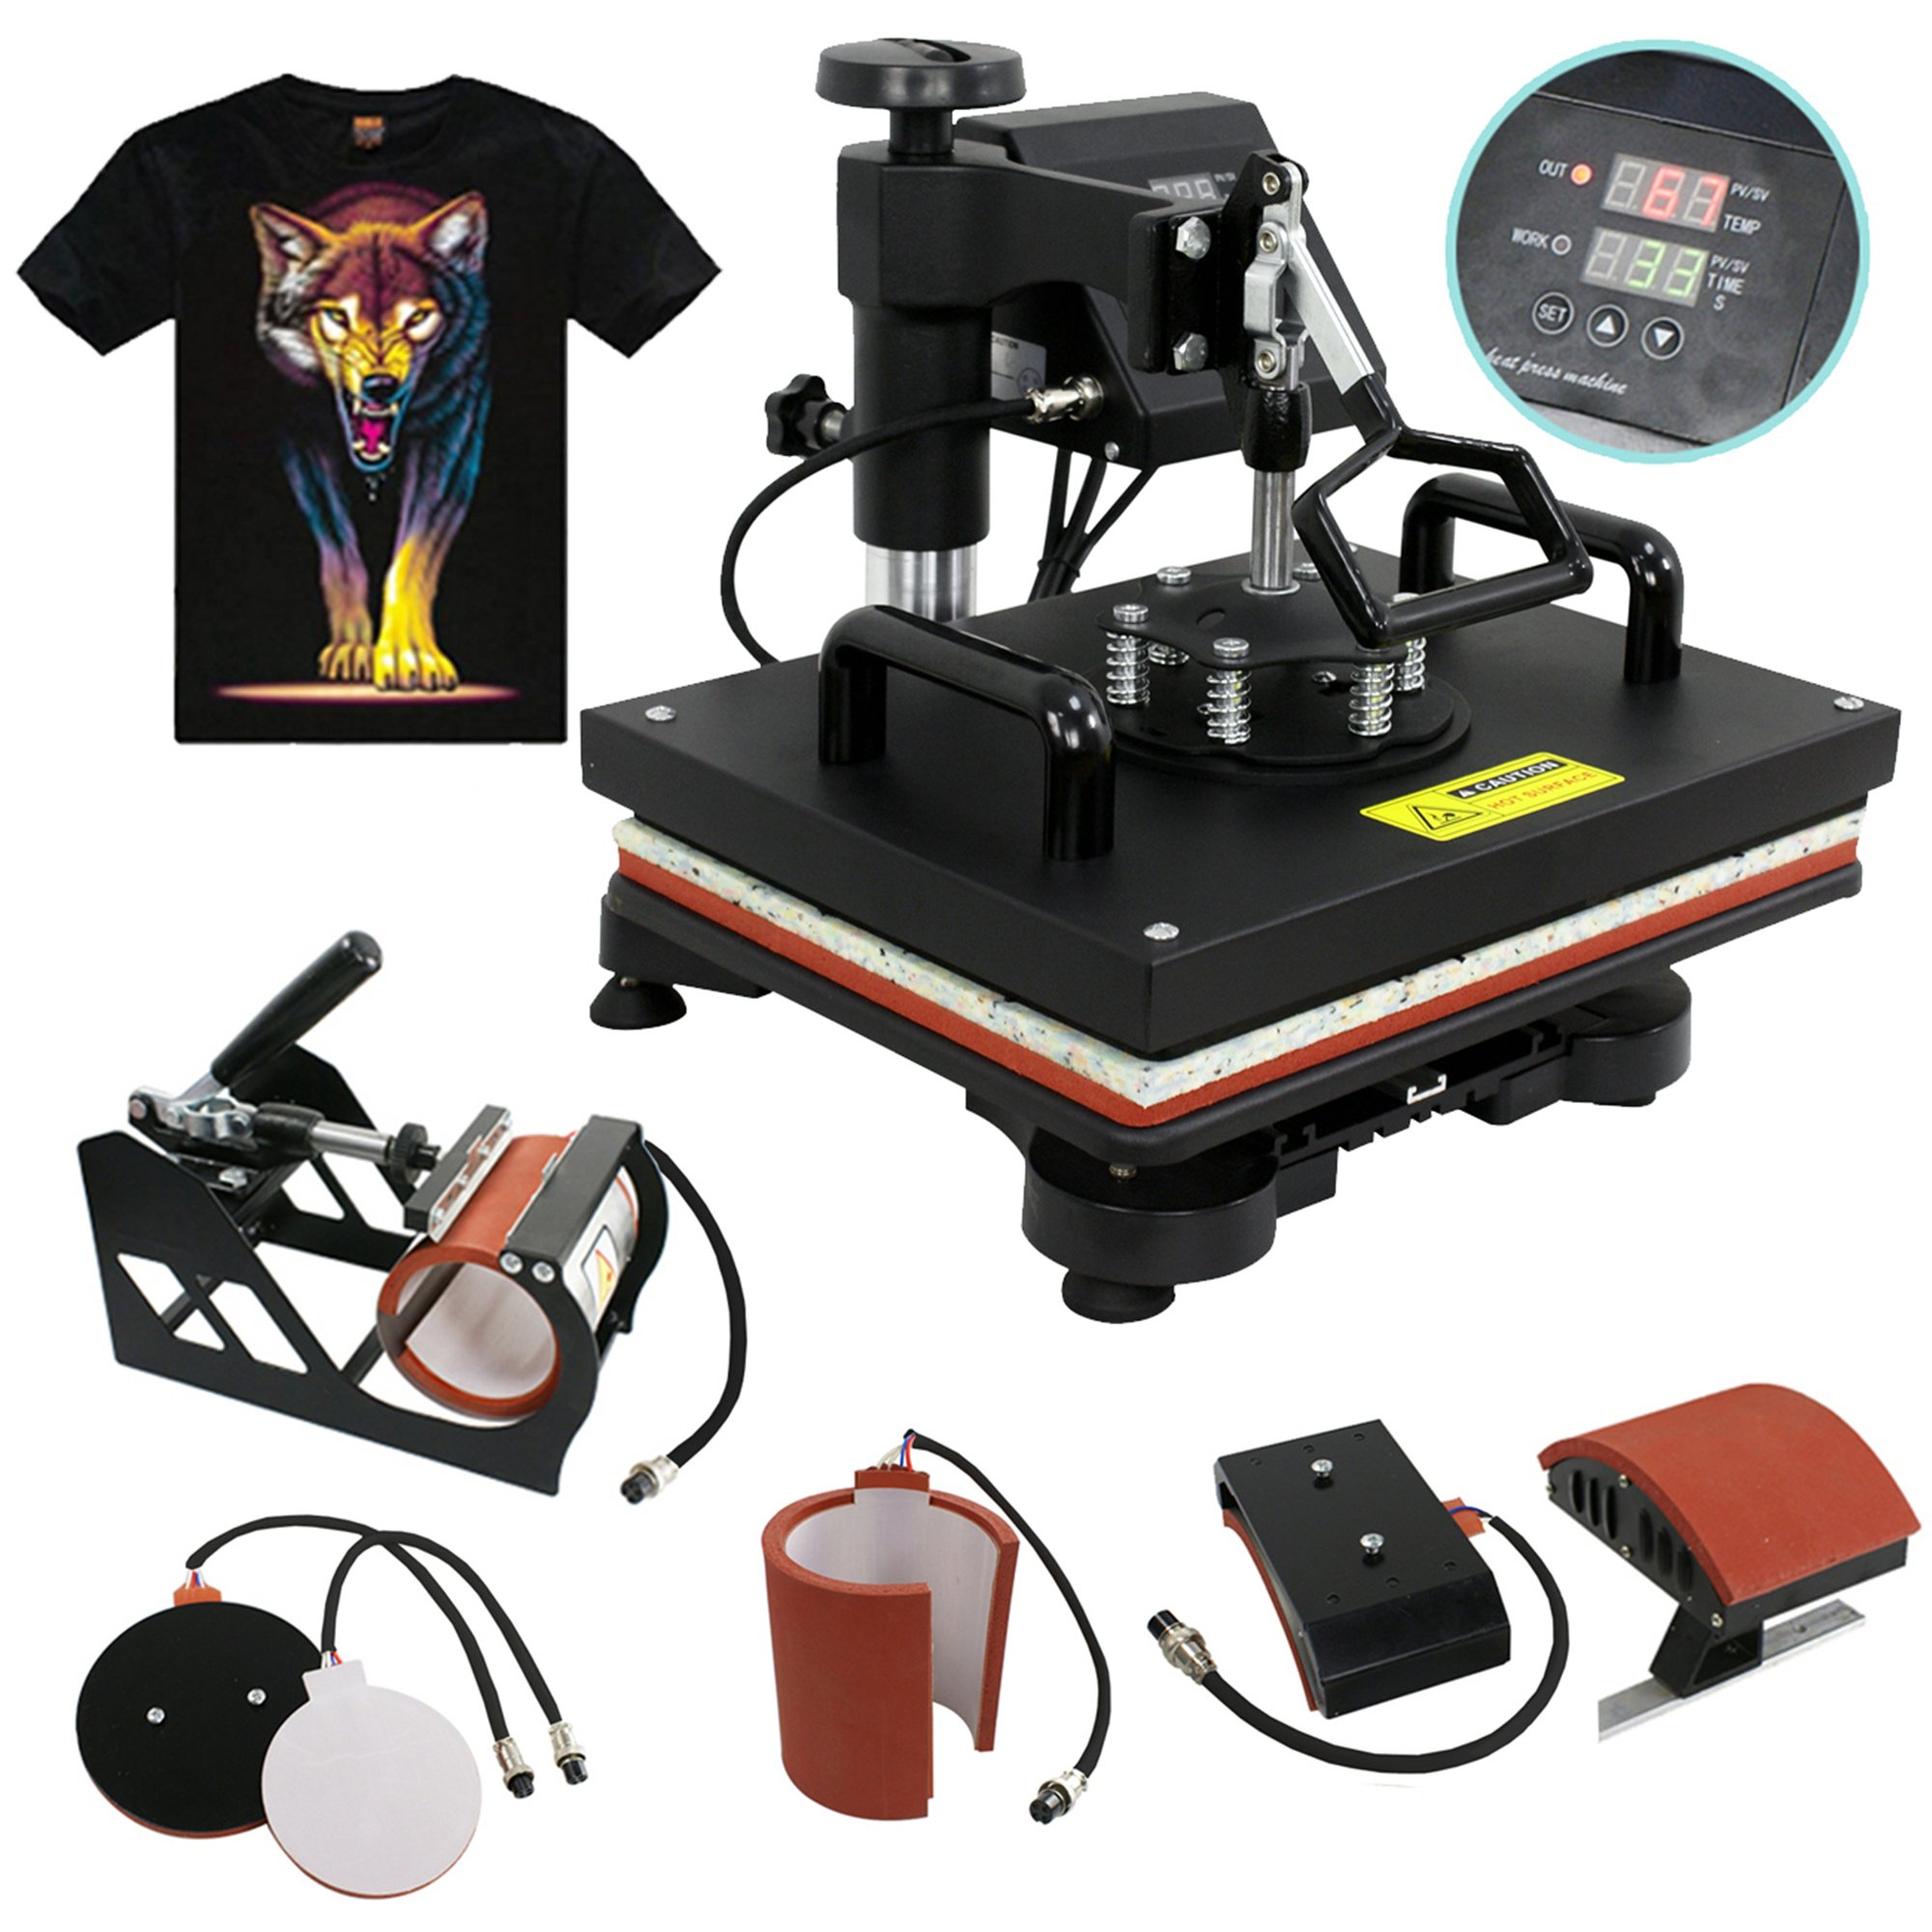 F2C 5 in 1 Professional Digital Transfer Sublimation Heat Press Machine Hat/Mug/Plate/Cap/T-shirt Multifunction Black (5 in 1) by F2C